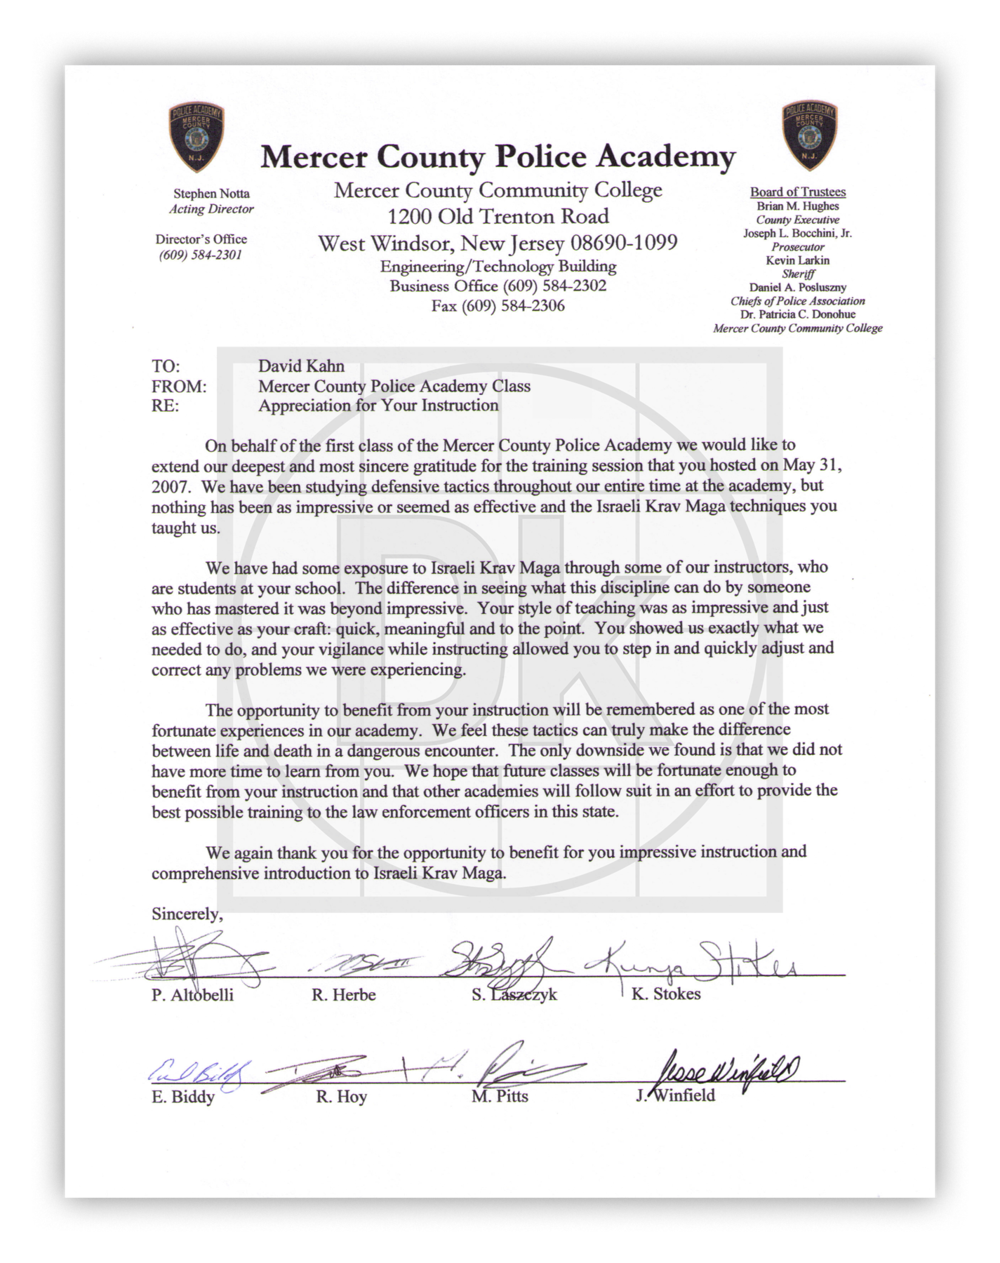 Mercer County Police Academy